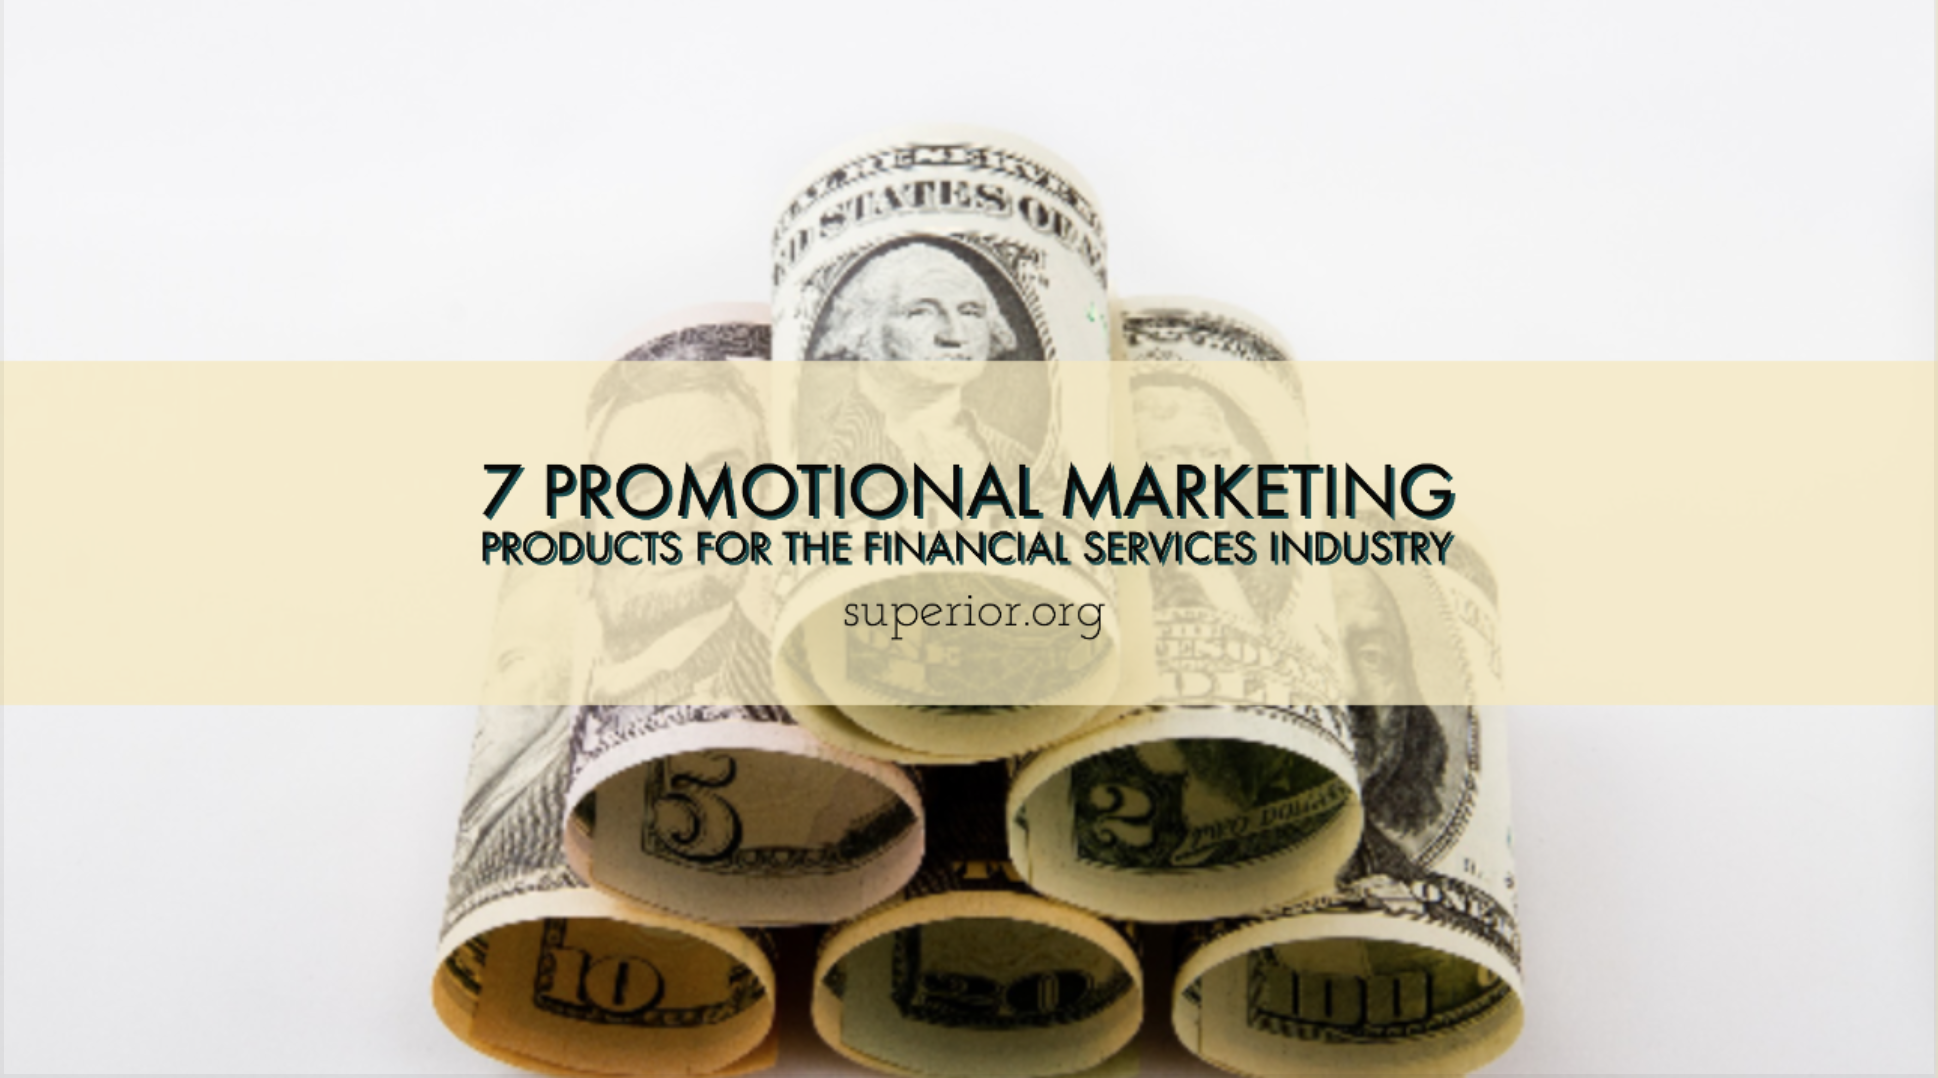 7 Promotional Marketing Products for the Financial Services Industry